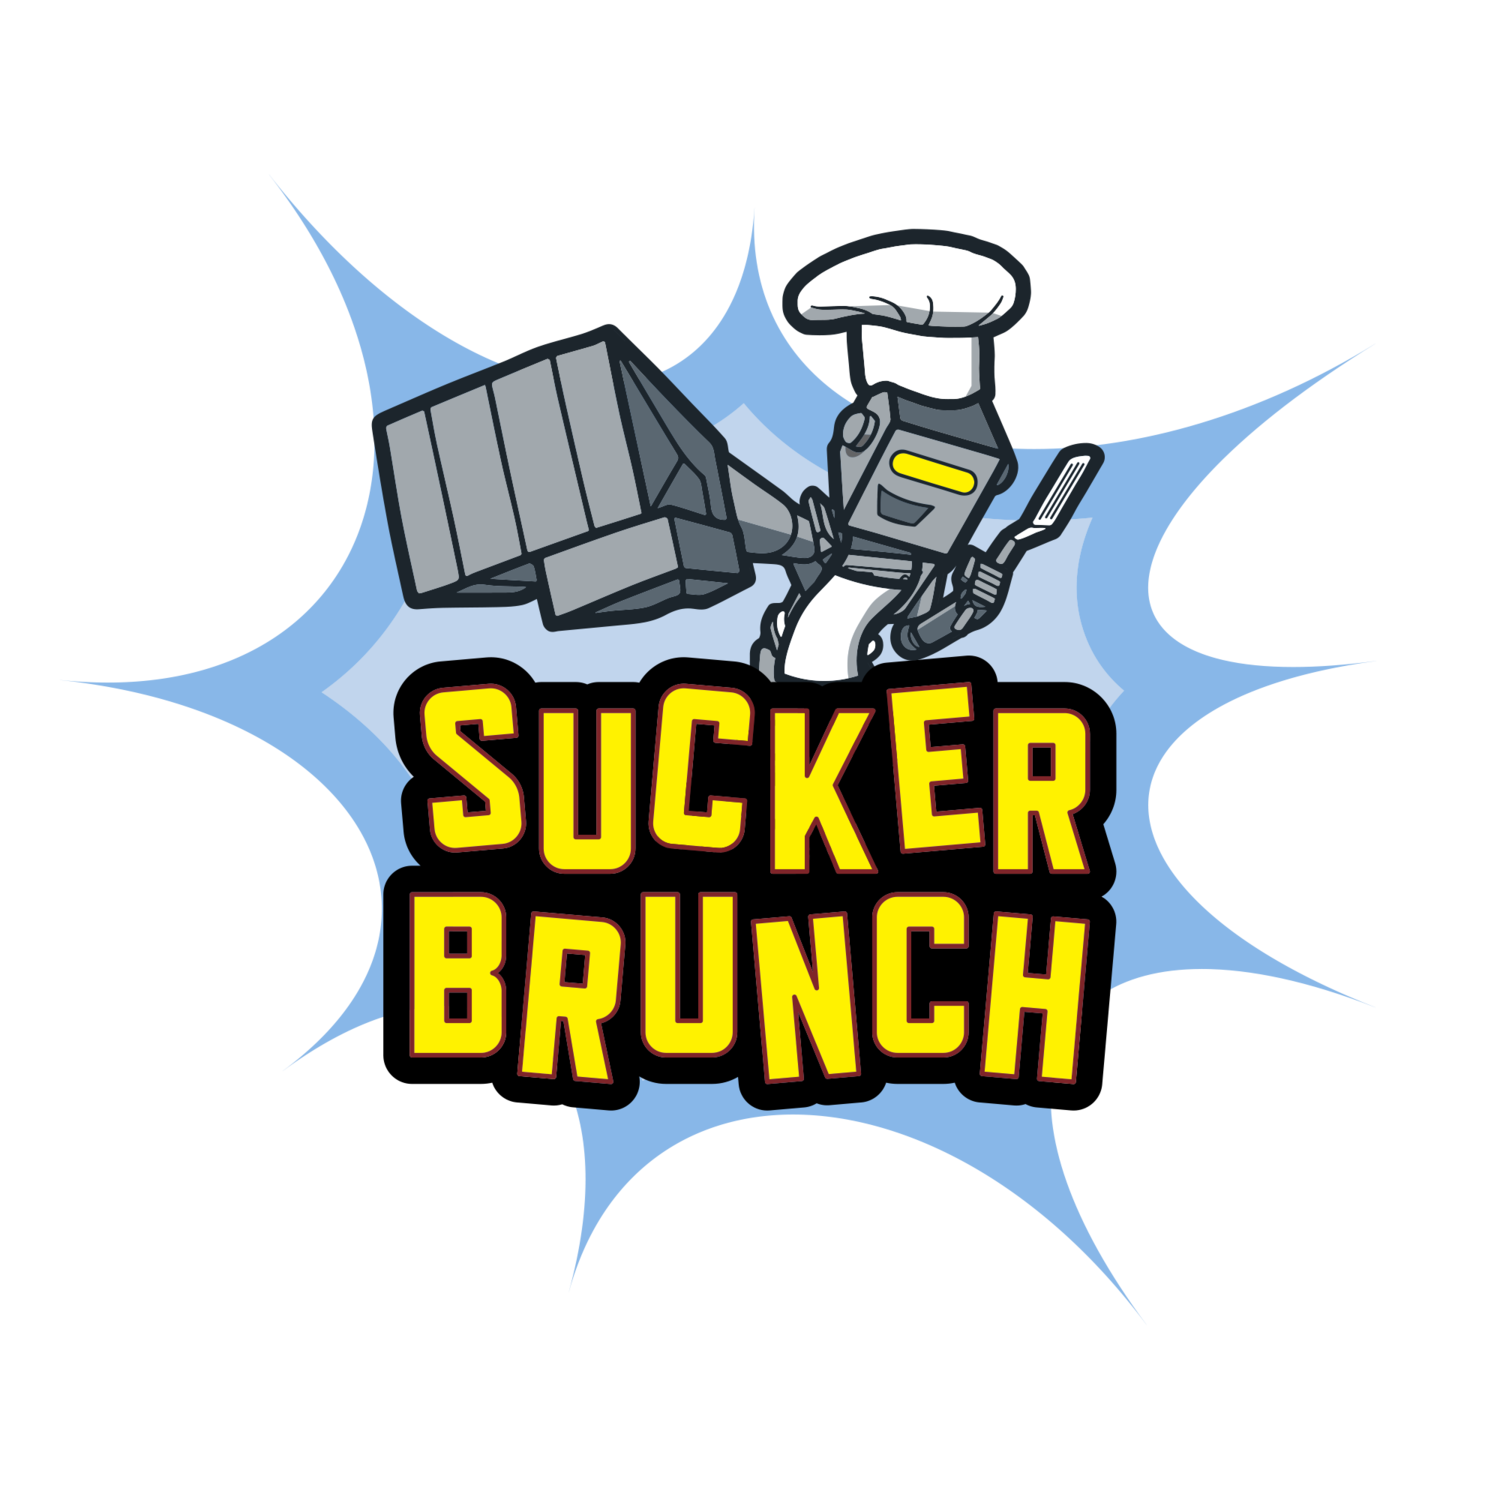 Sucker Brunch